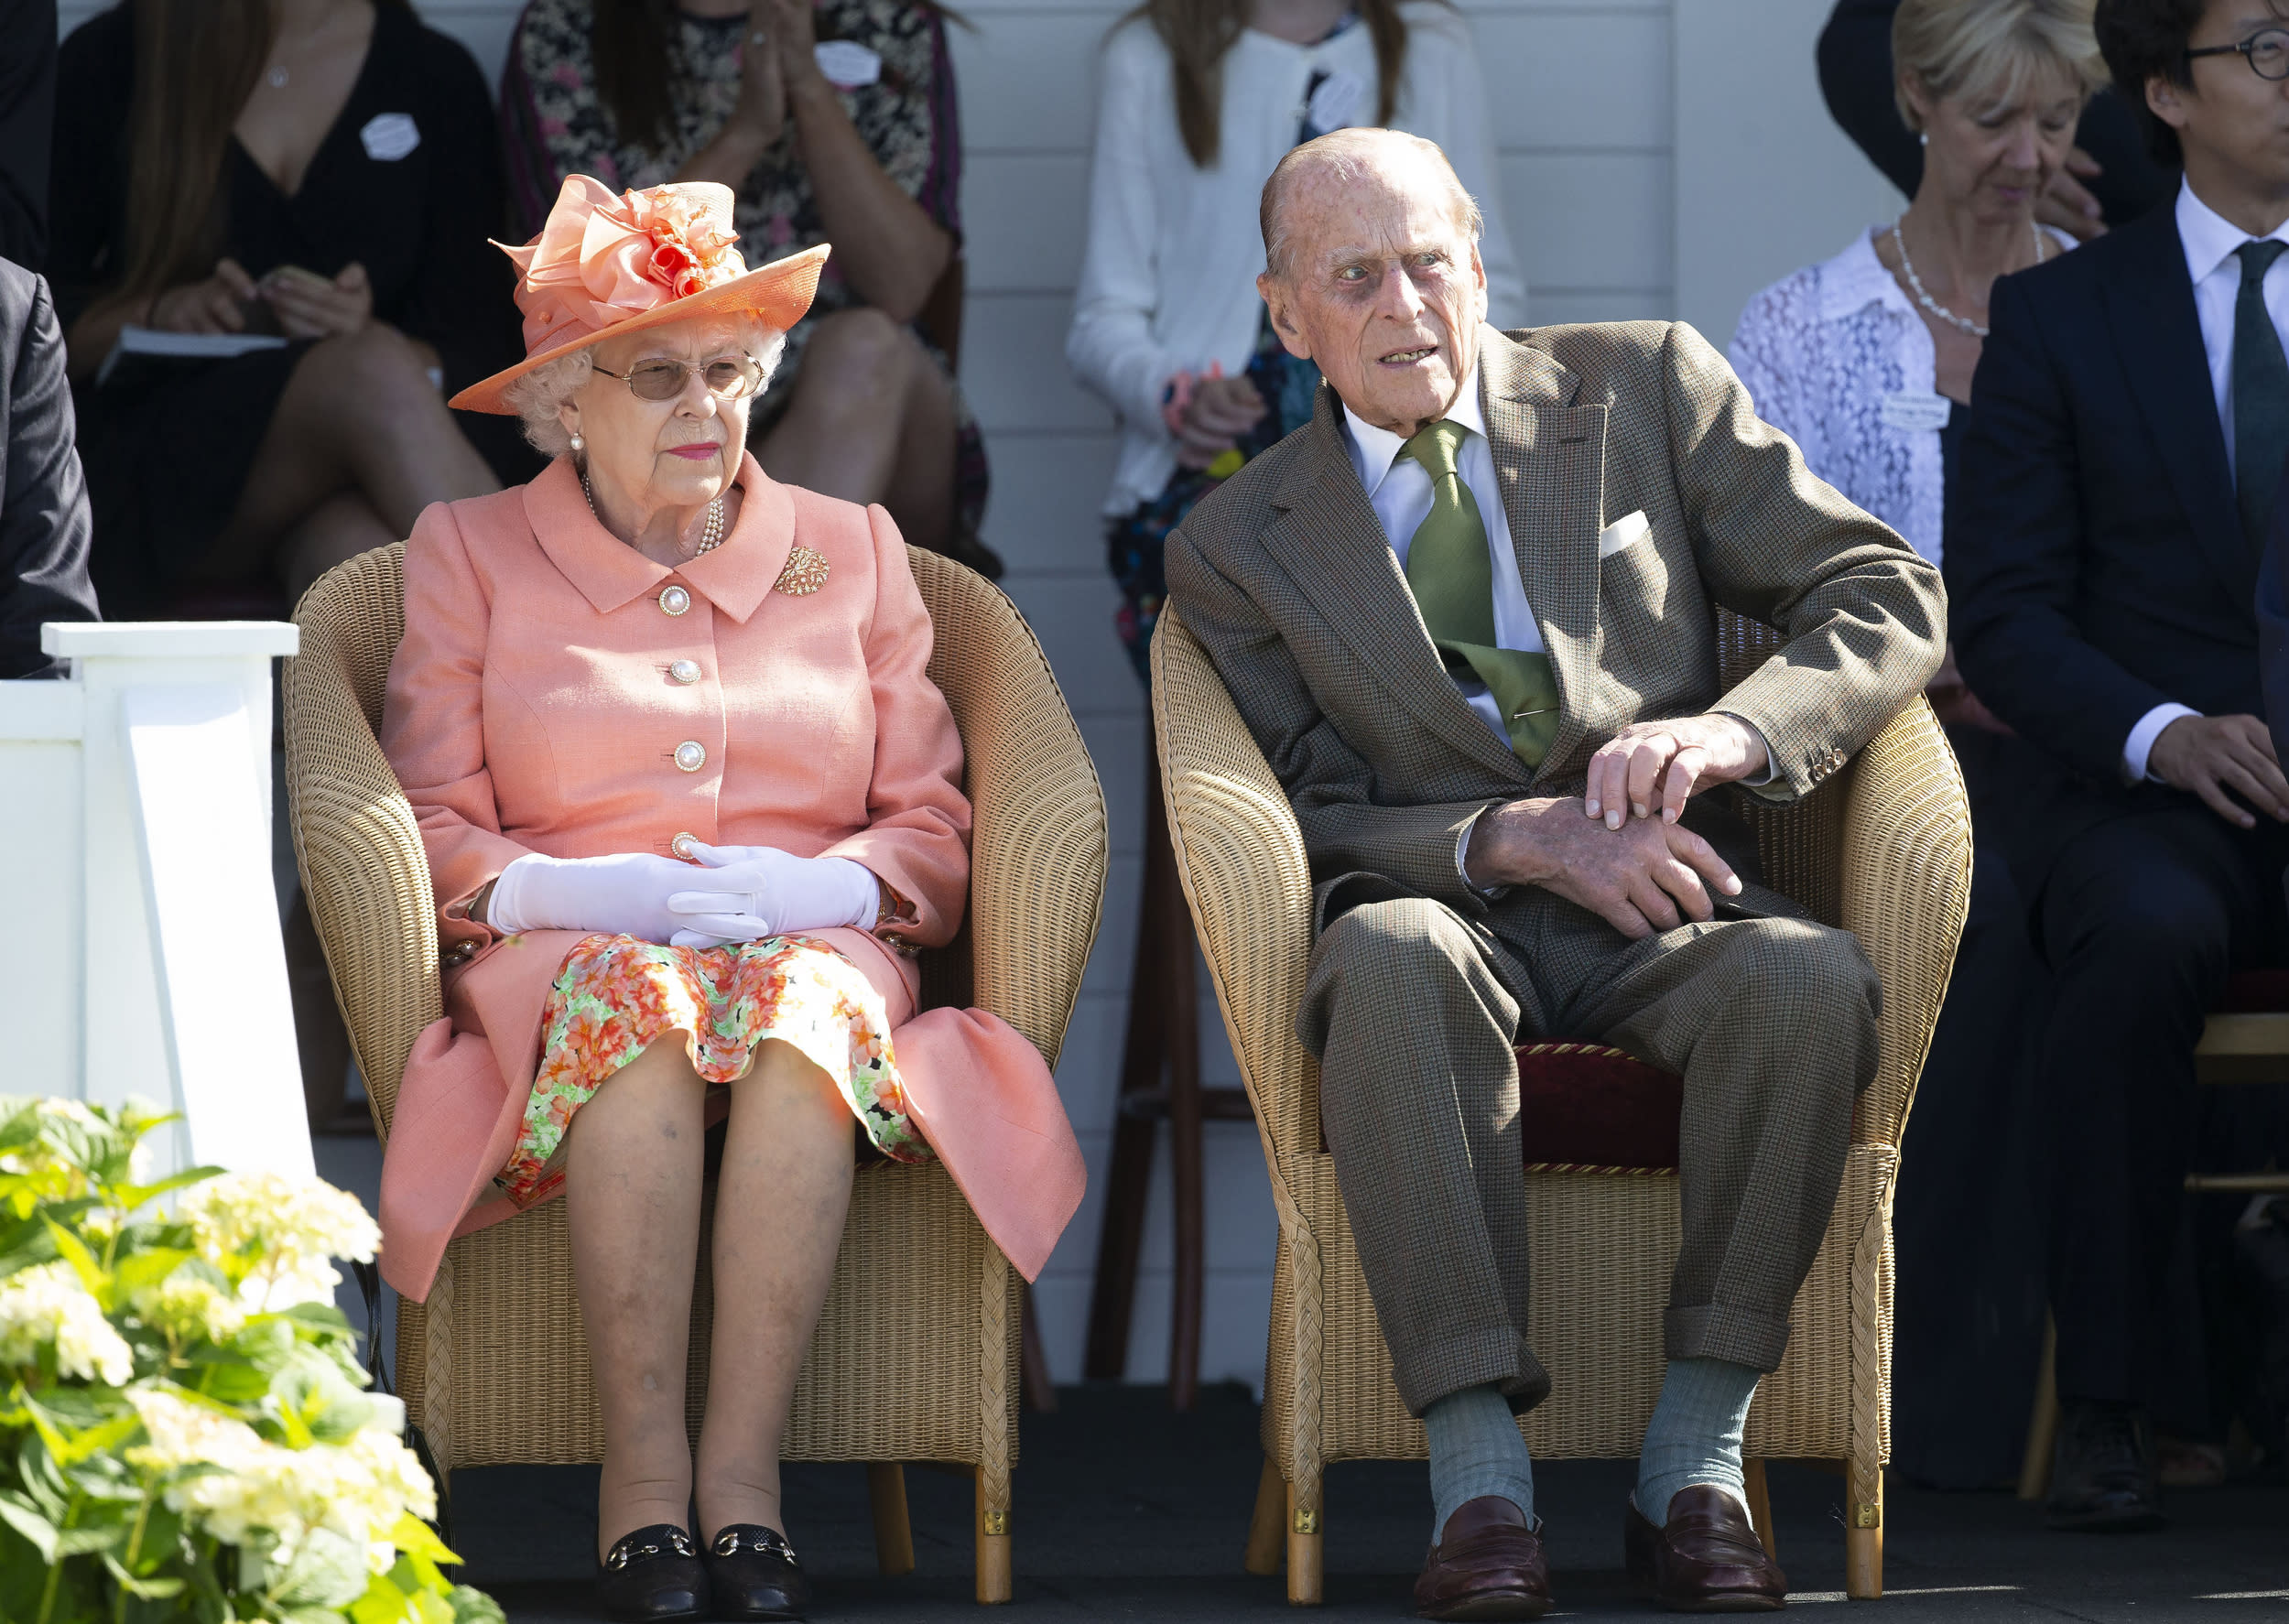 January 17, 2019 - Prince Philip The Duke of Edinburgh was not injured in a two-car crash as he was driving his Land Rover near Sandringham Estate. - File Photo by: zz/KGC-107/STAR MAX/IPx 2018 6/24/18 Her Majesty Queen Elizabeth II and Prince Philip The Duke of Edinburgh at the Royal Windsor Cup Final at the Guards Polo Club and the British Driving Society Annual Show at Smith's Lawn in Windsor Great Park. (Windsor, Berkshire, England, UK)